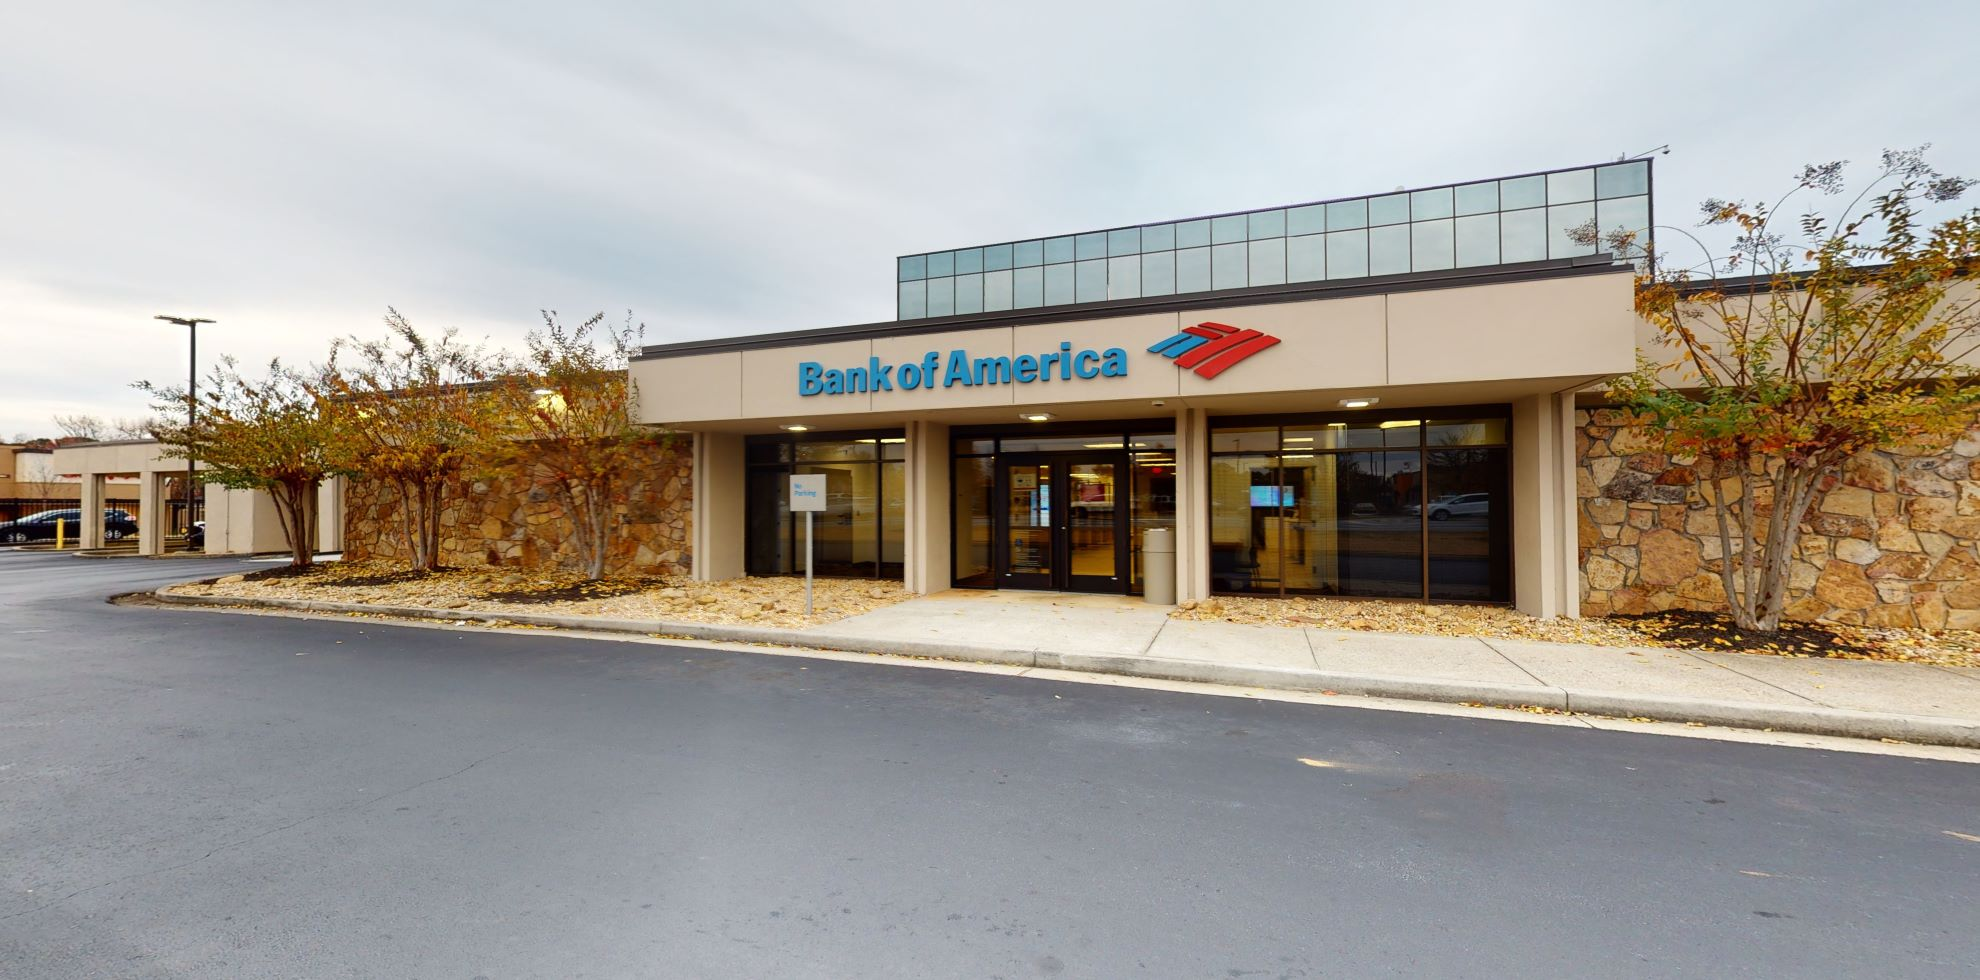 Bank of America financial center with drive-thru ATM and teller | 1540 Highway 138 SE, Conyers, GA 30013